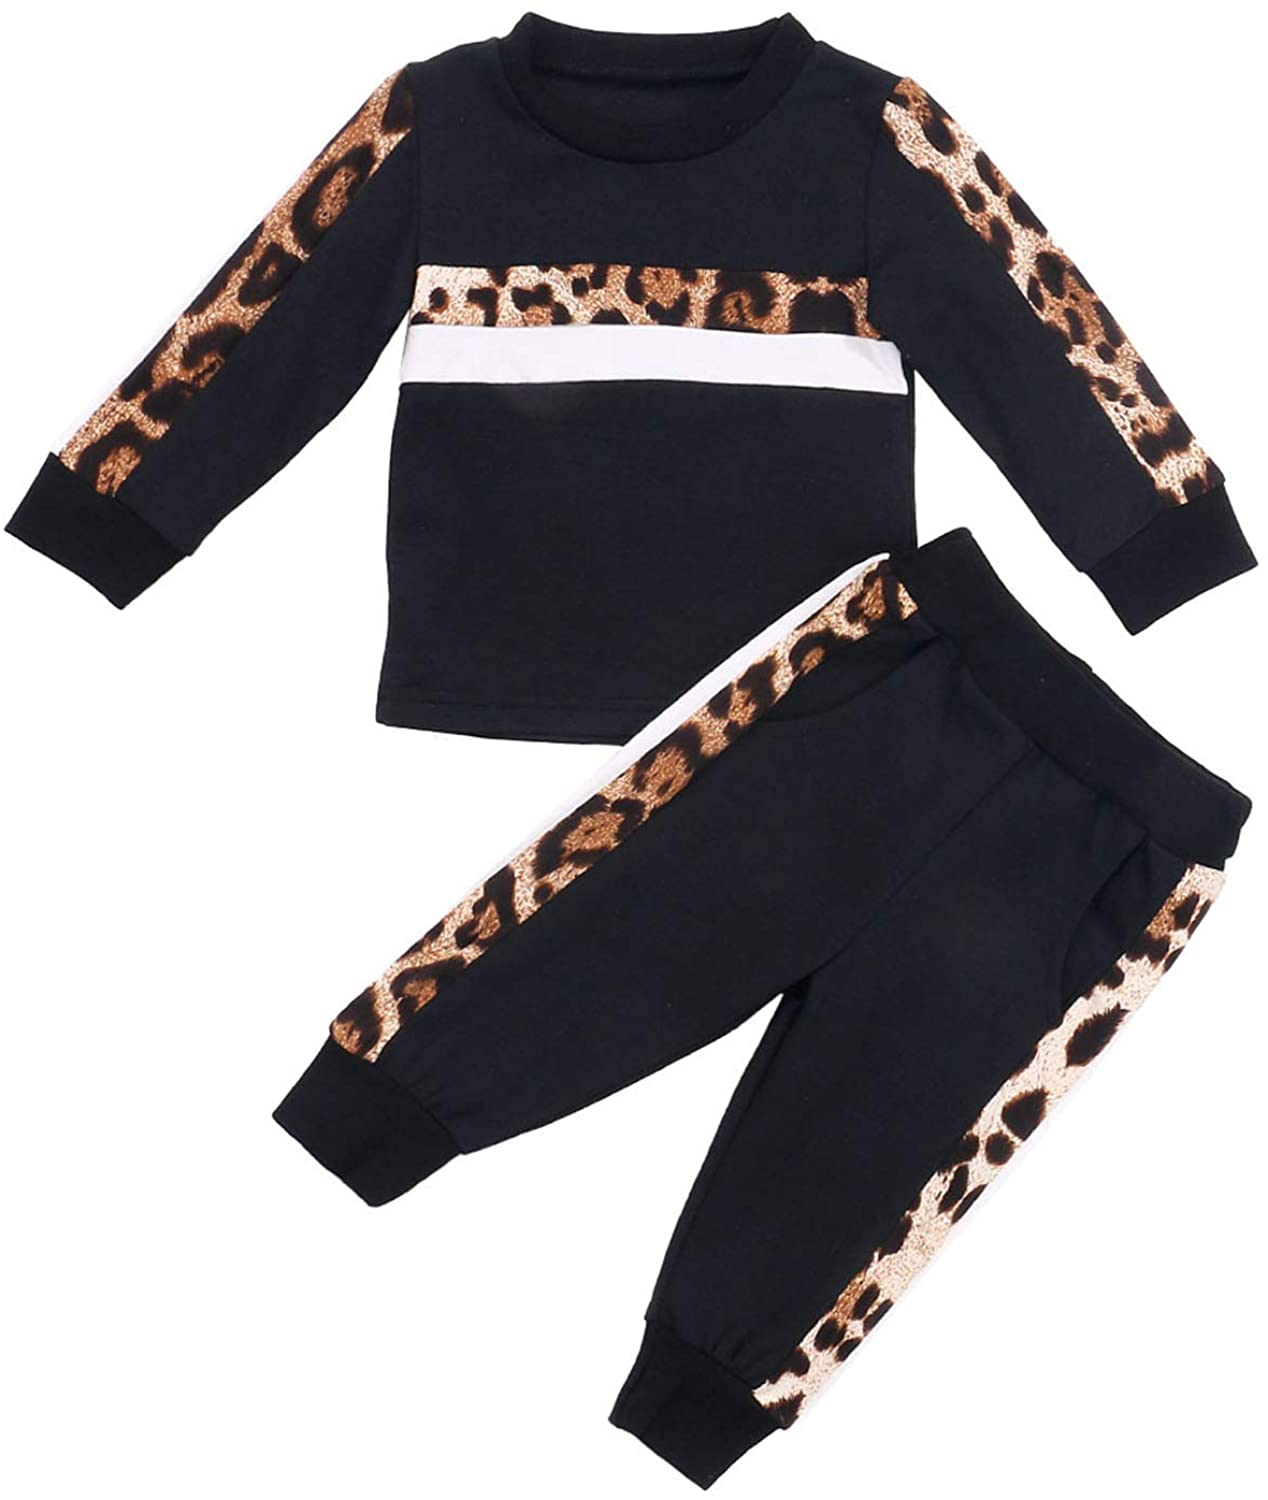 Kid Baby Girl Leopard Print Clothes Set Solid Color Long Sleeve Pullover Top Elastic Waist Pants 2Pcs Fall Winter Outfit